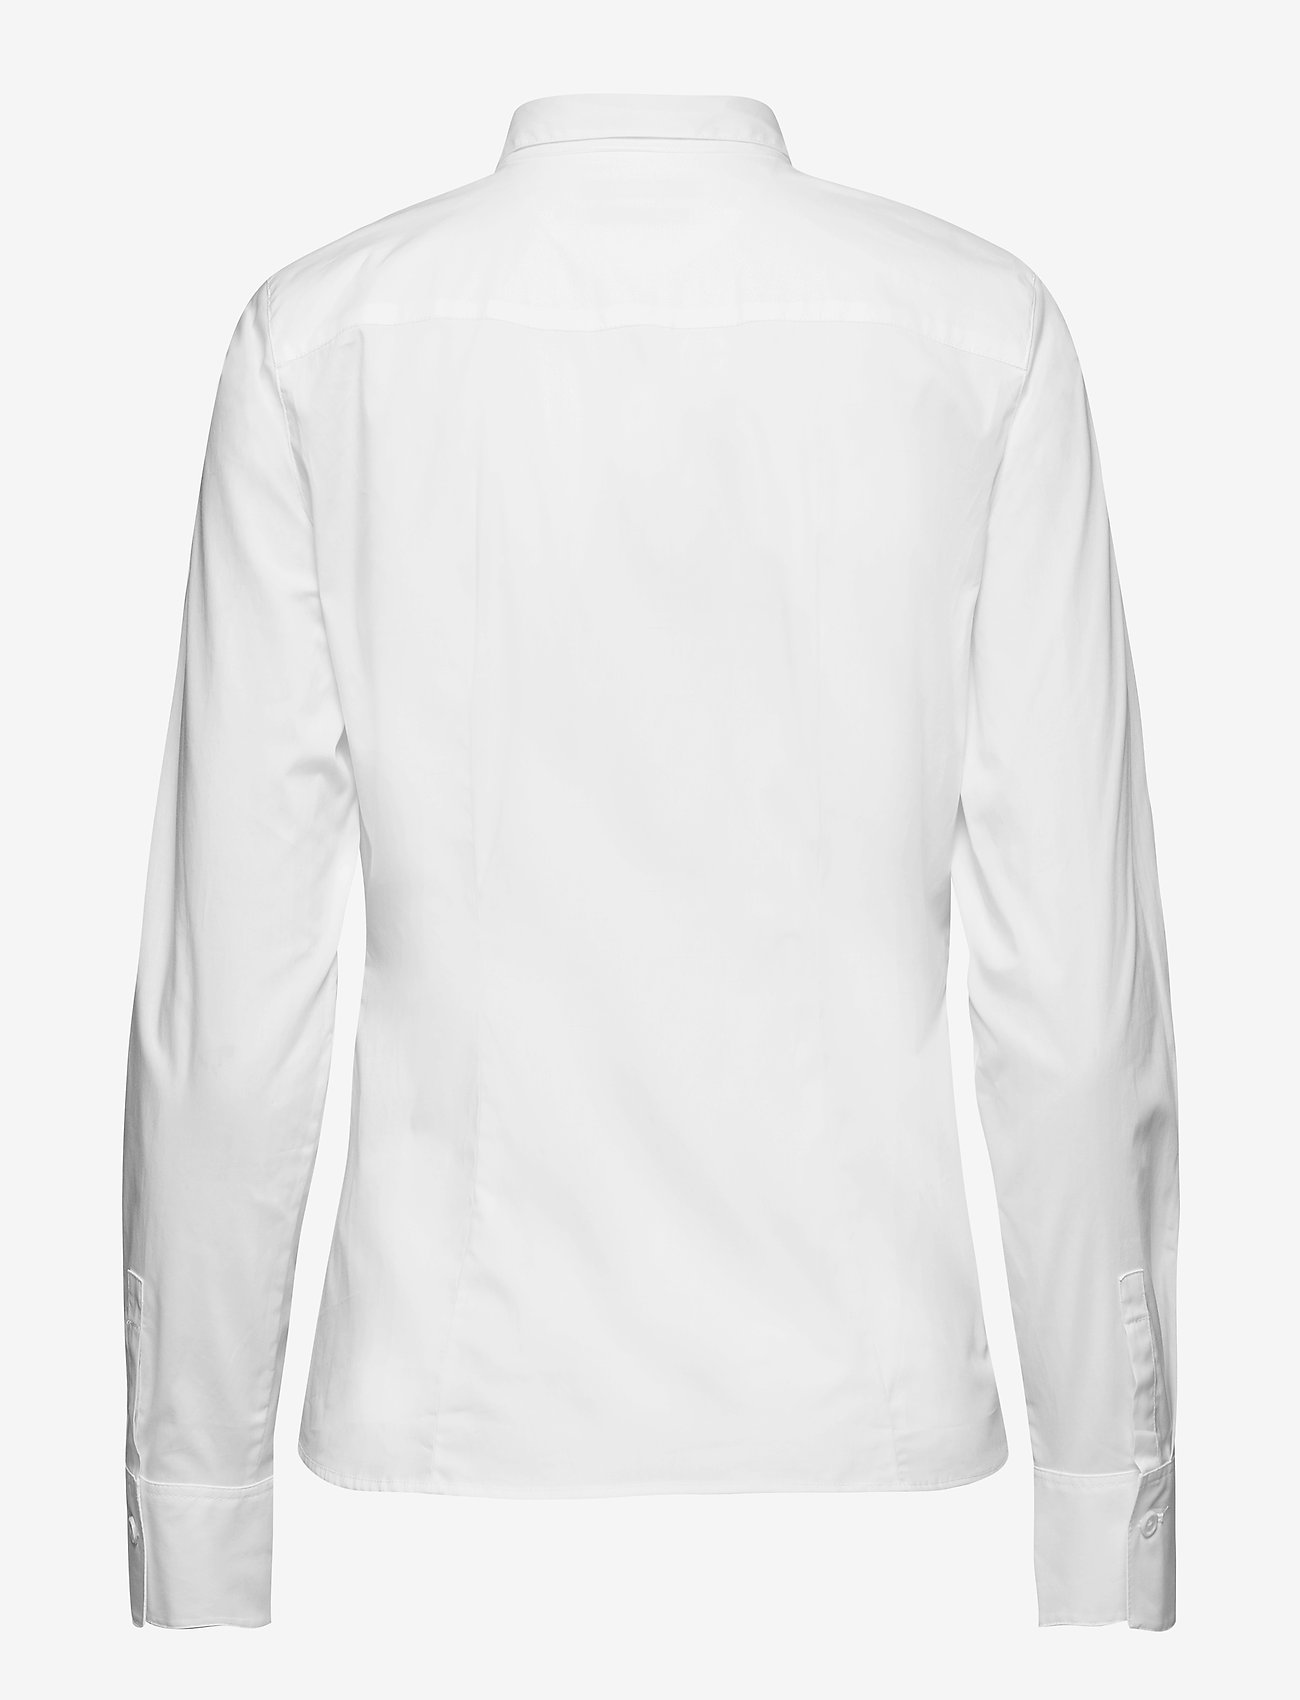 Shirt (White) (791.20 kr) - Marc O'Polo